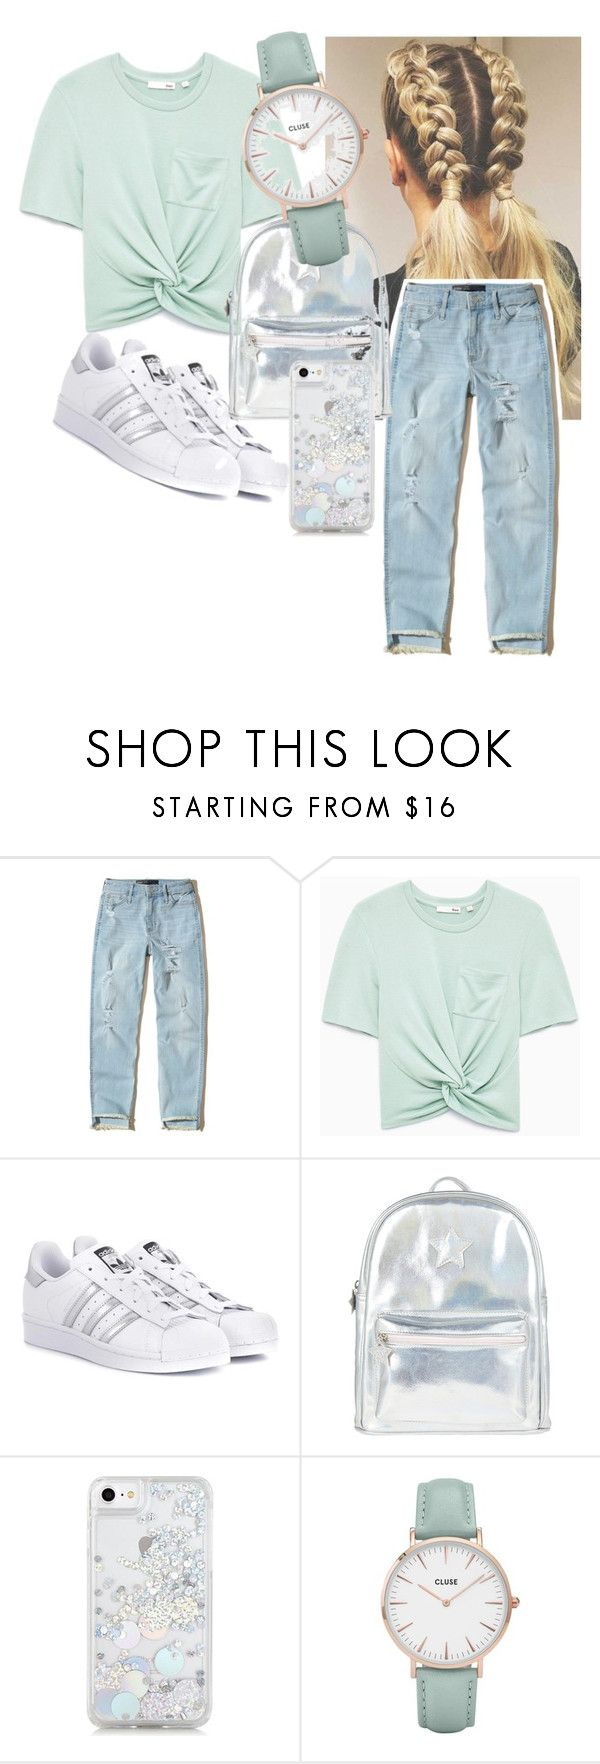 """""""Untitled #21"""" by androsales24 on Polyvore featuring Hollister Co., adidas Originals, Accessorize, Skinnydip and CLUSE"""